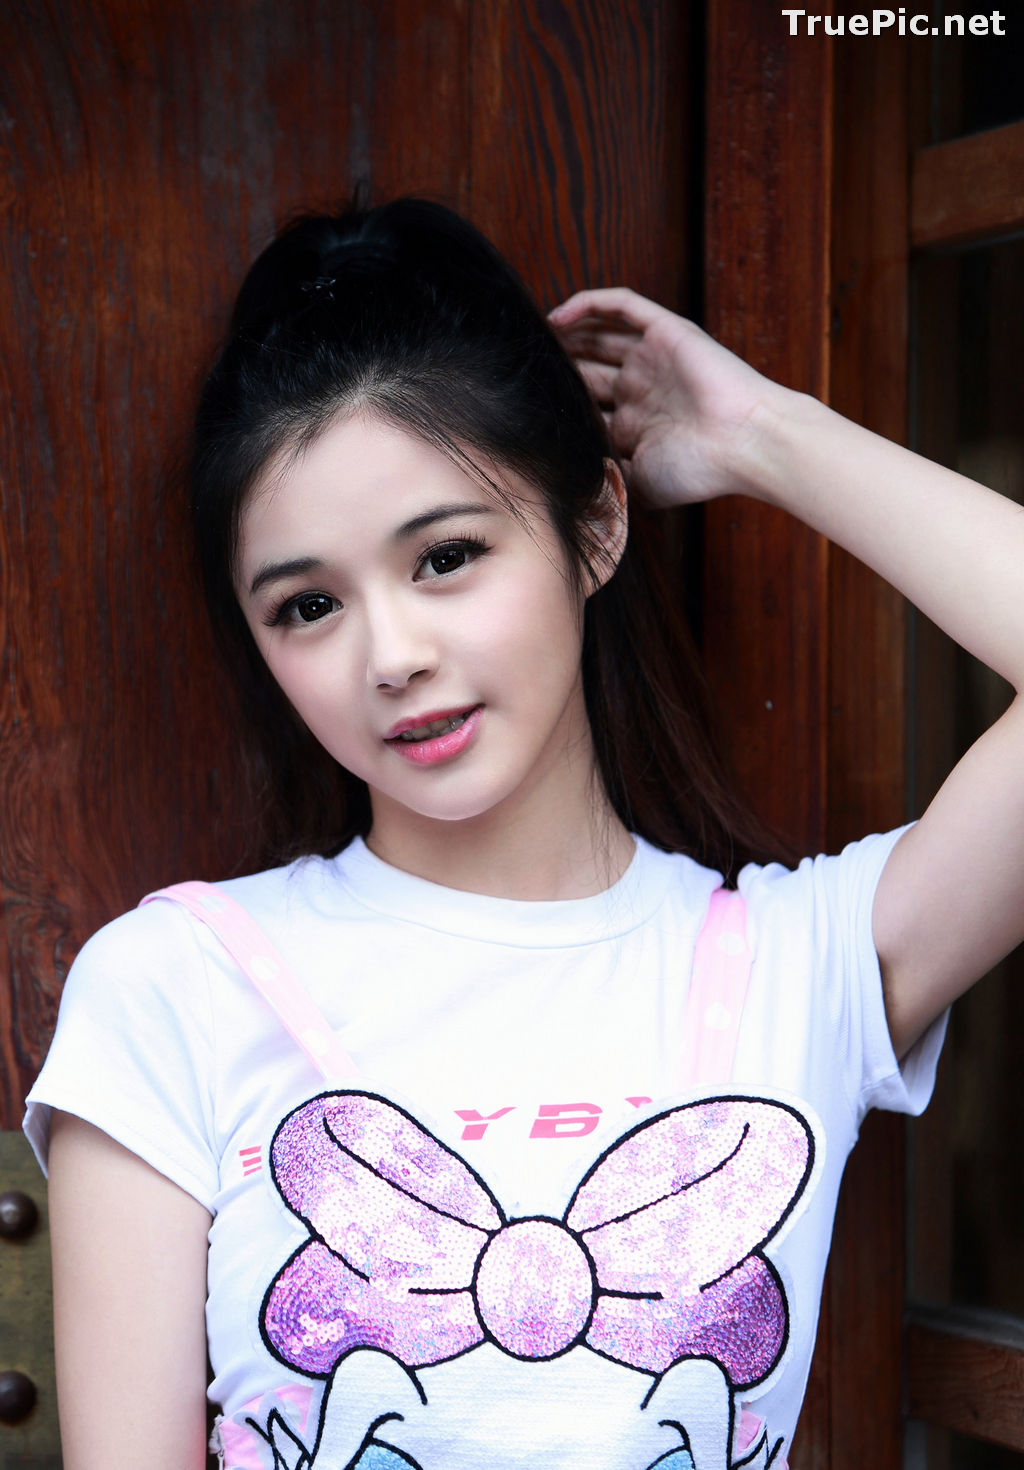 Image Taiwanese Model - 黃旺旺 - Lovely and Naughty Girl - TruePic.net - Picture-1